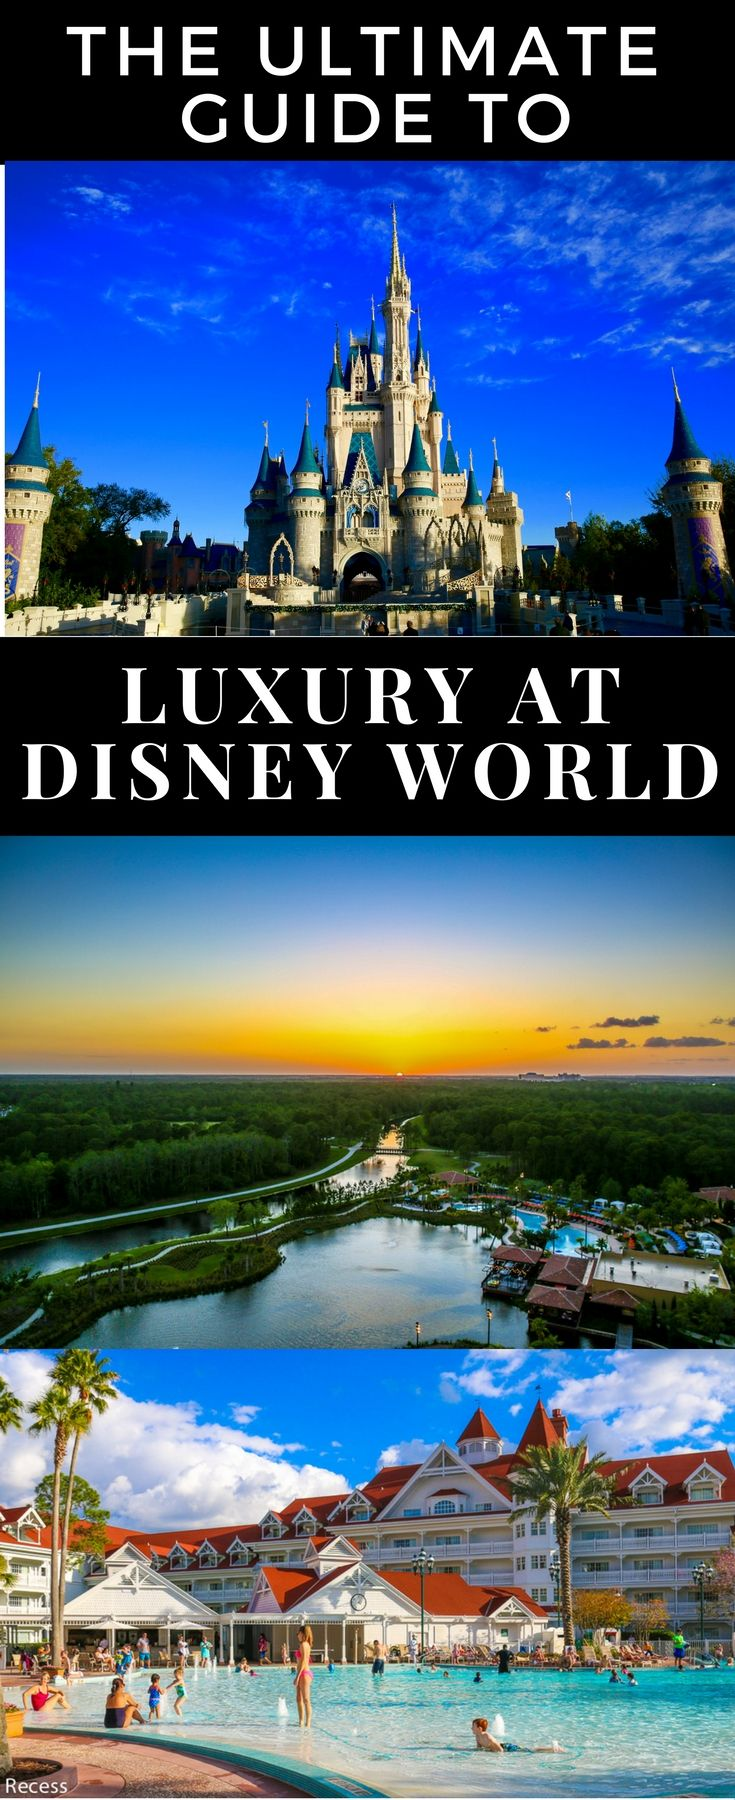 The best luxury hotels, spas, and restaurants reviewed at Disney World for a luxury Orlando vacation.